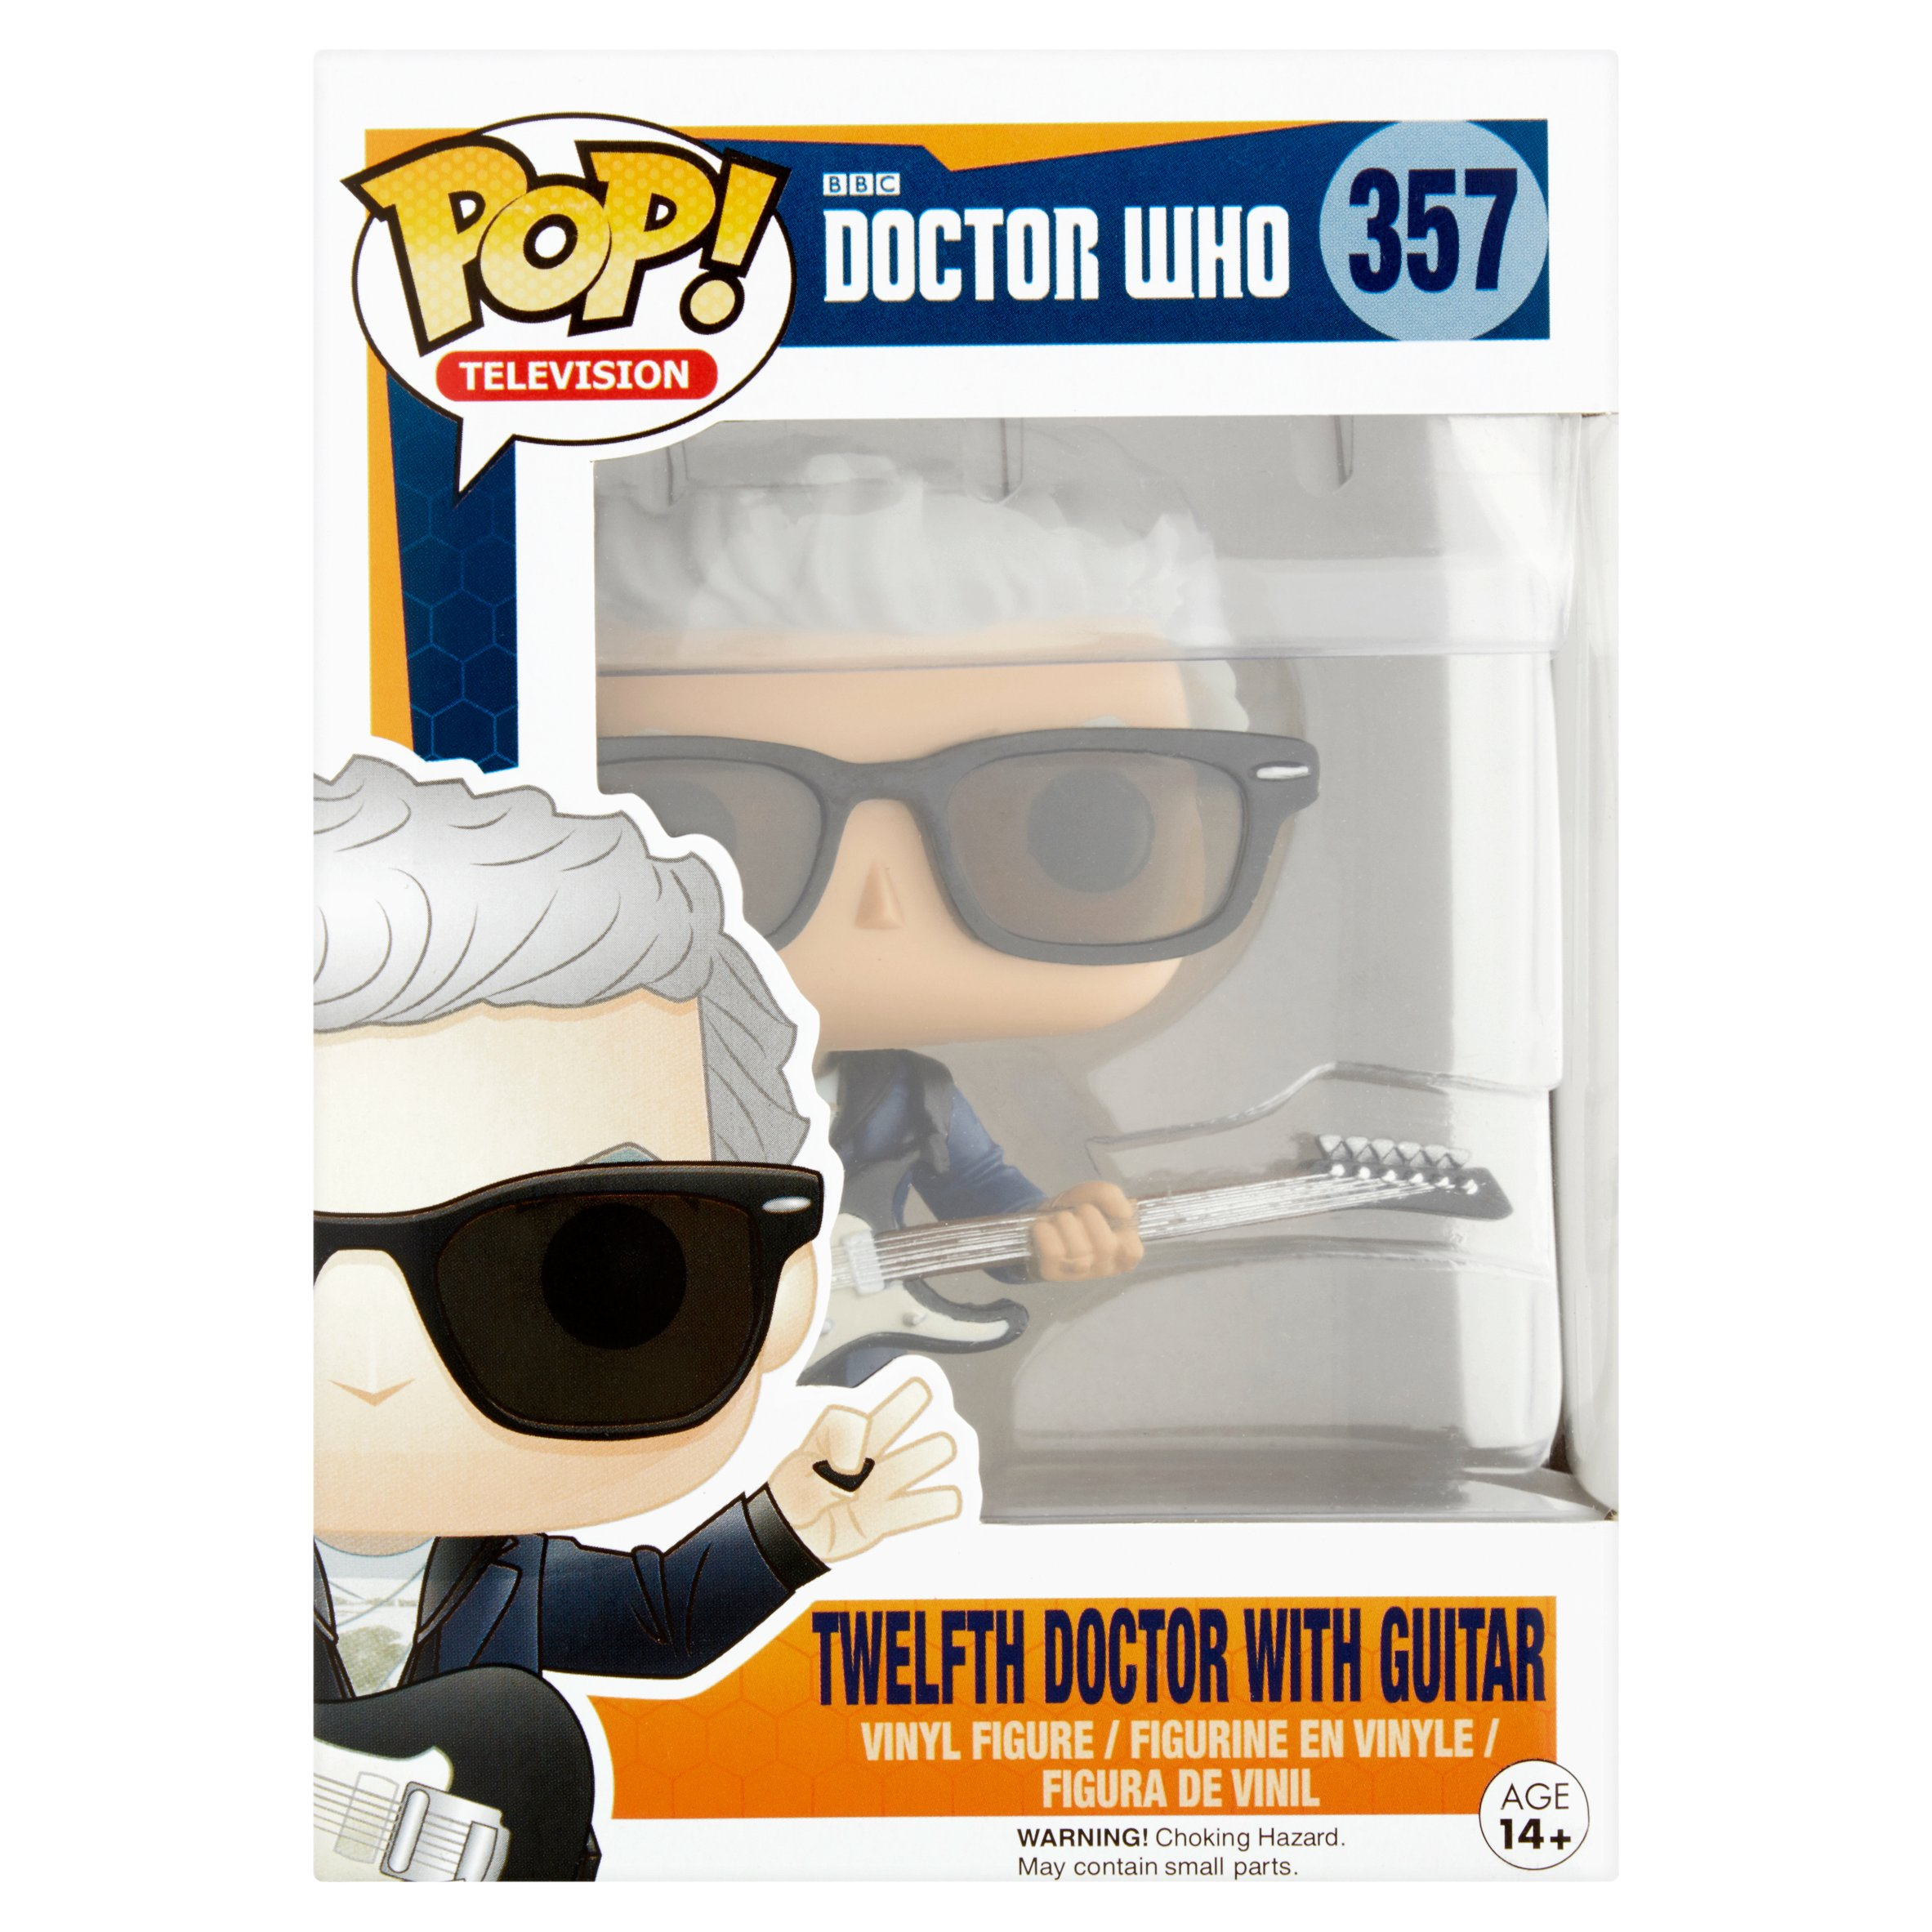 Pop! Television BBC Doctor Who 357 Twelfth Doctor with Guitar Vinyl Figure Age 14+